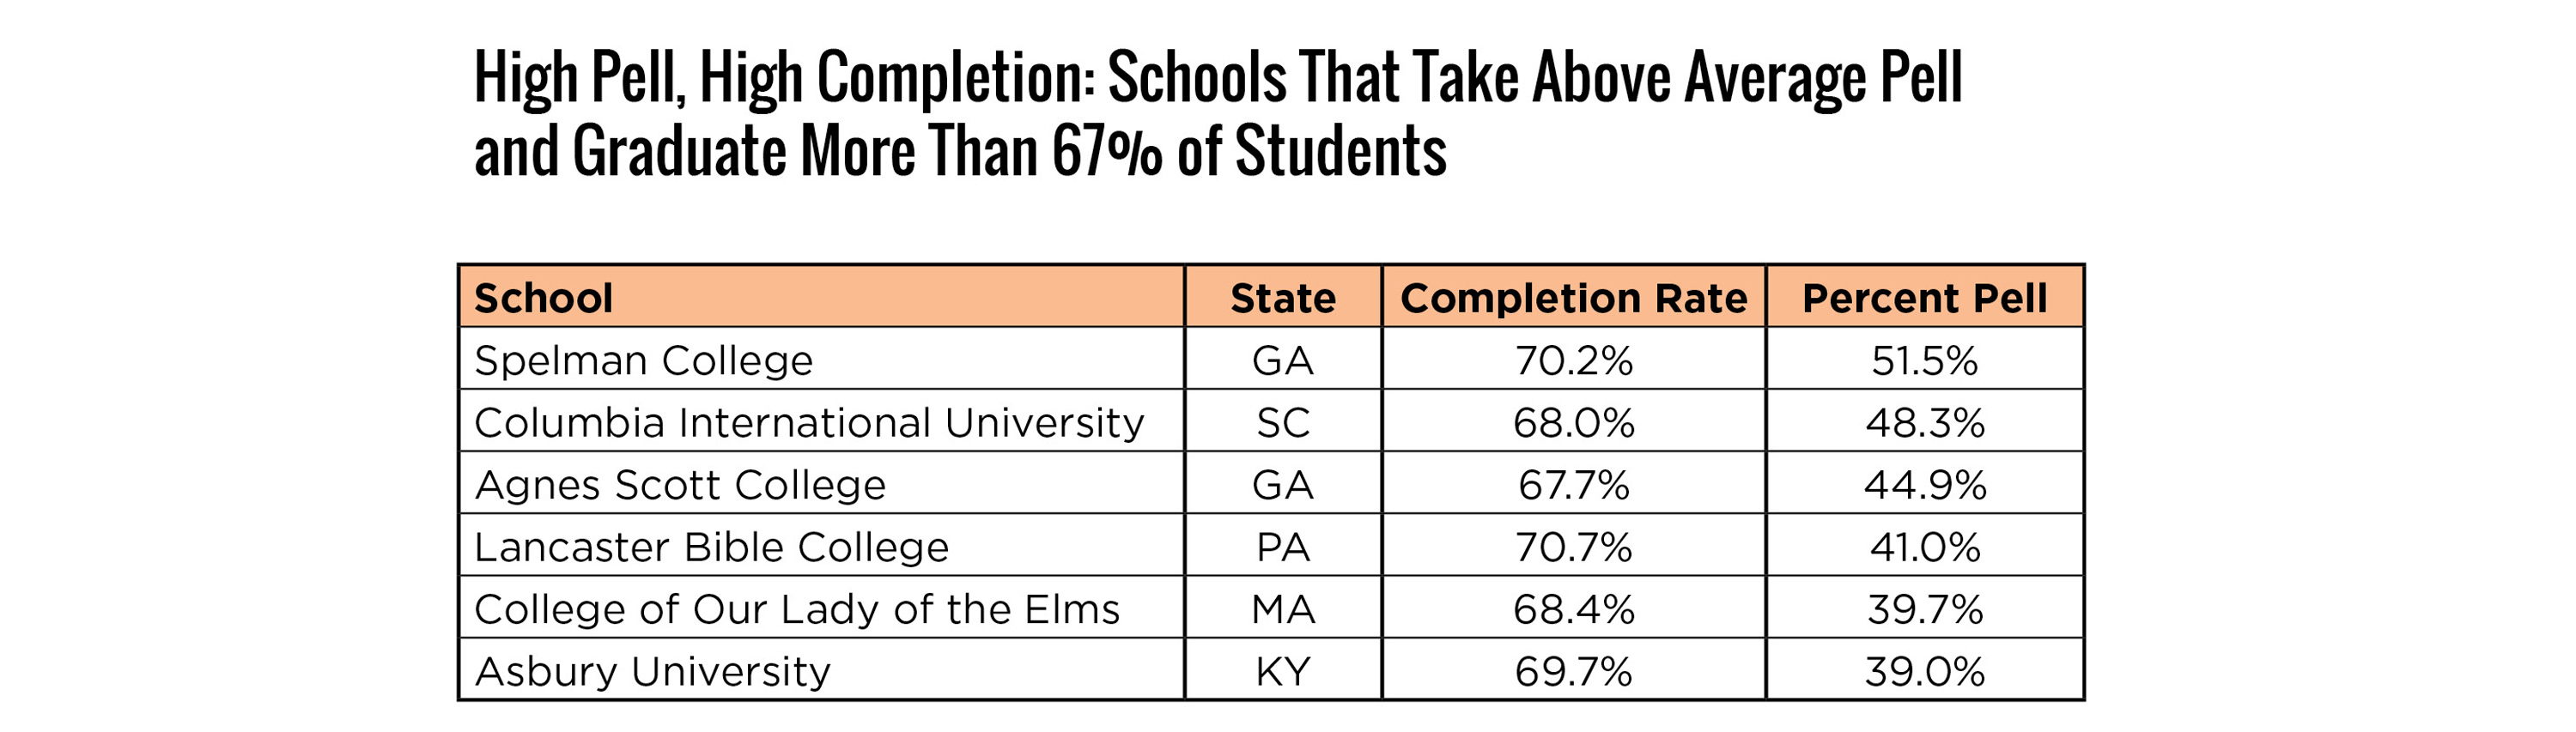 High Pell, High Completion: Schools That Take Above Average Pell  and Graduate More Than 67% of Students